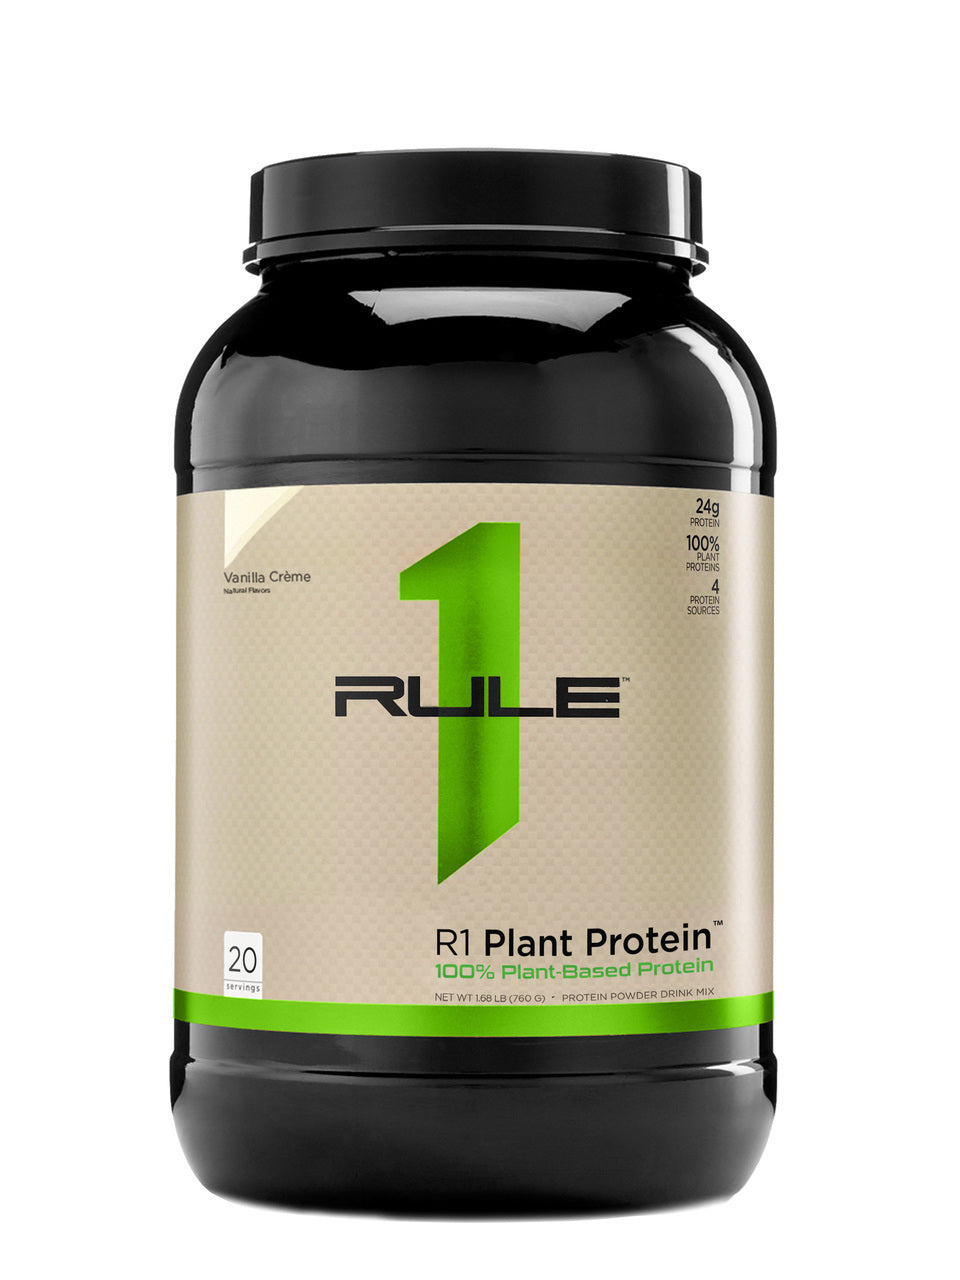 Rule 1 R1 Plant Protein - Super Nutrition